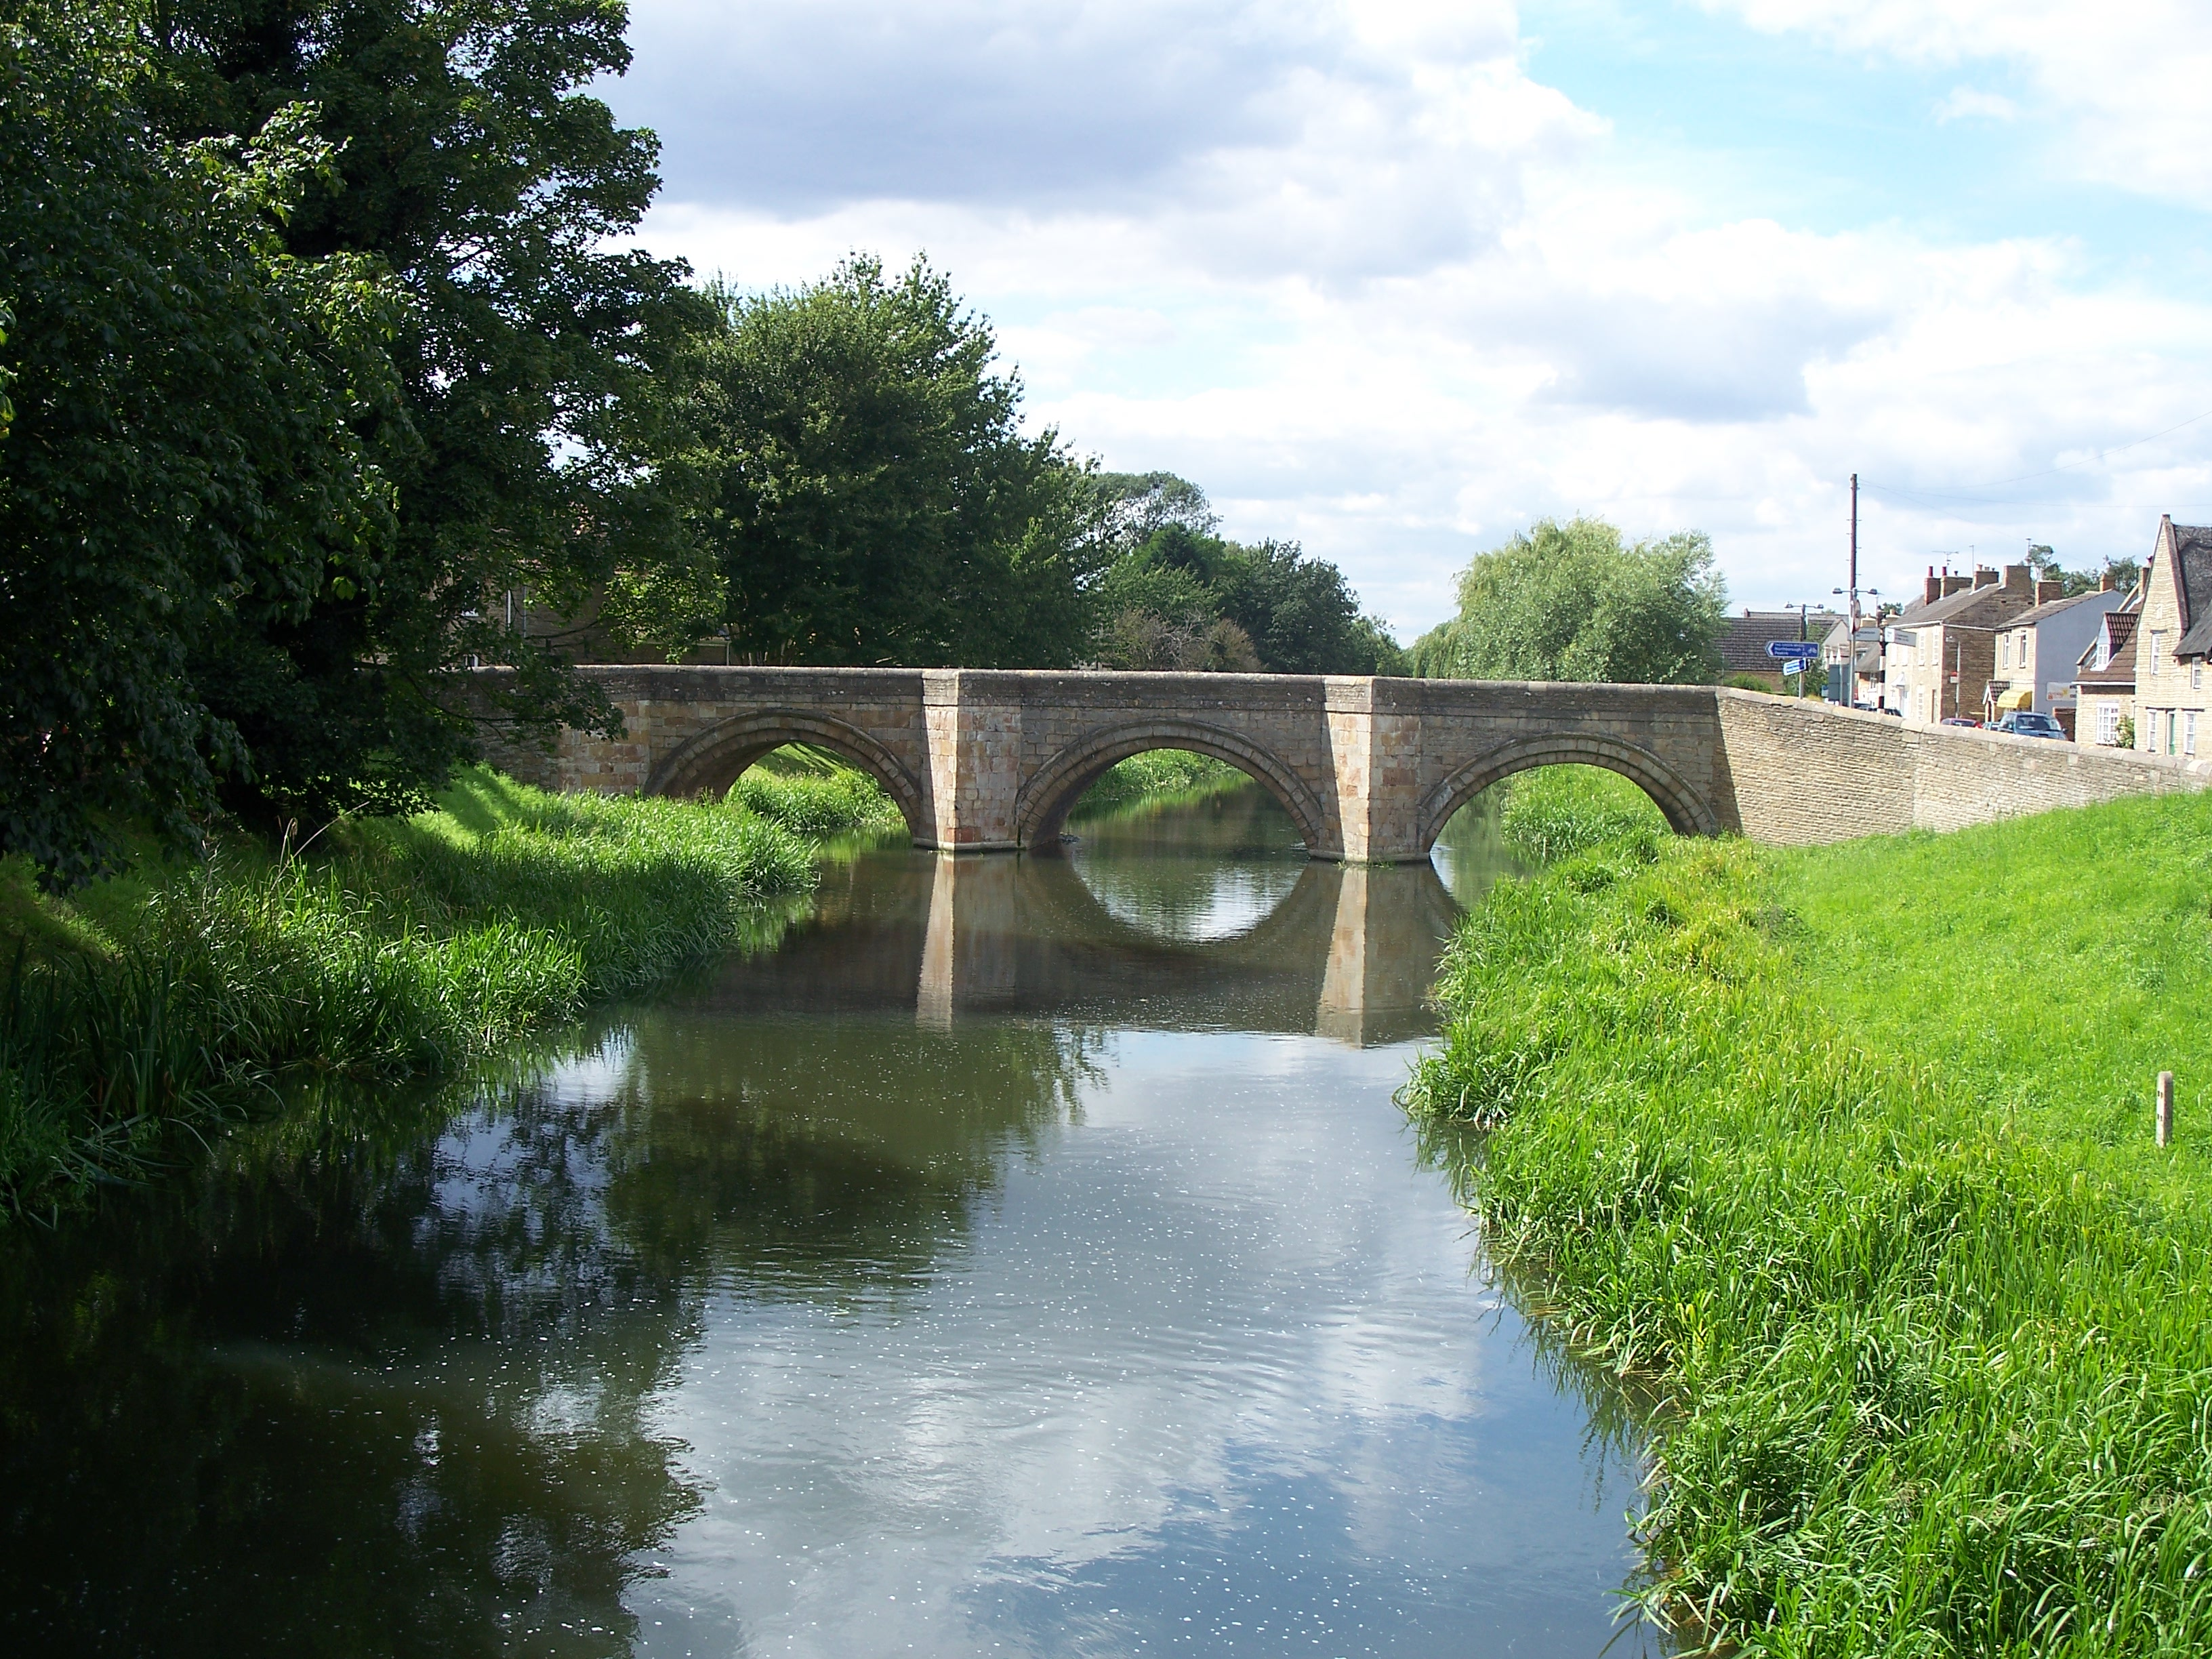 The bridge connecting Deeping St. James and Deeping Gate